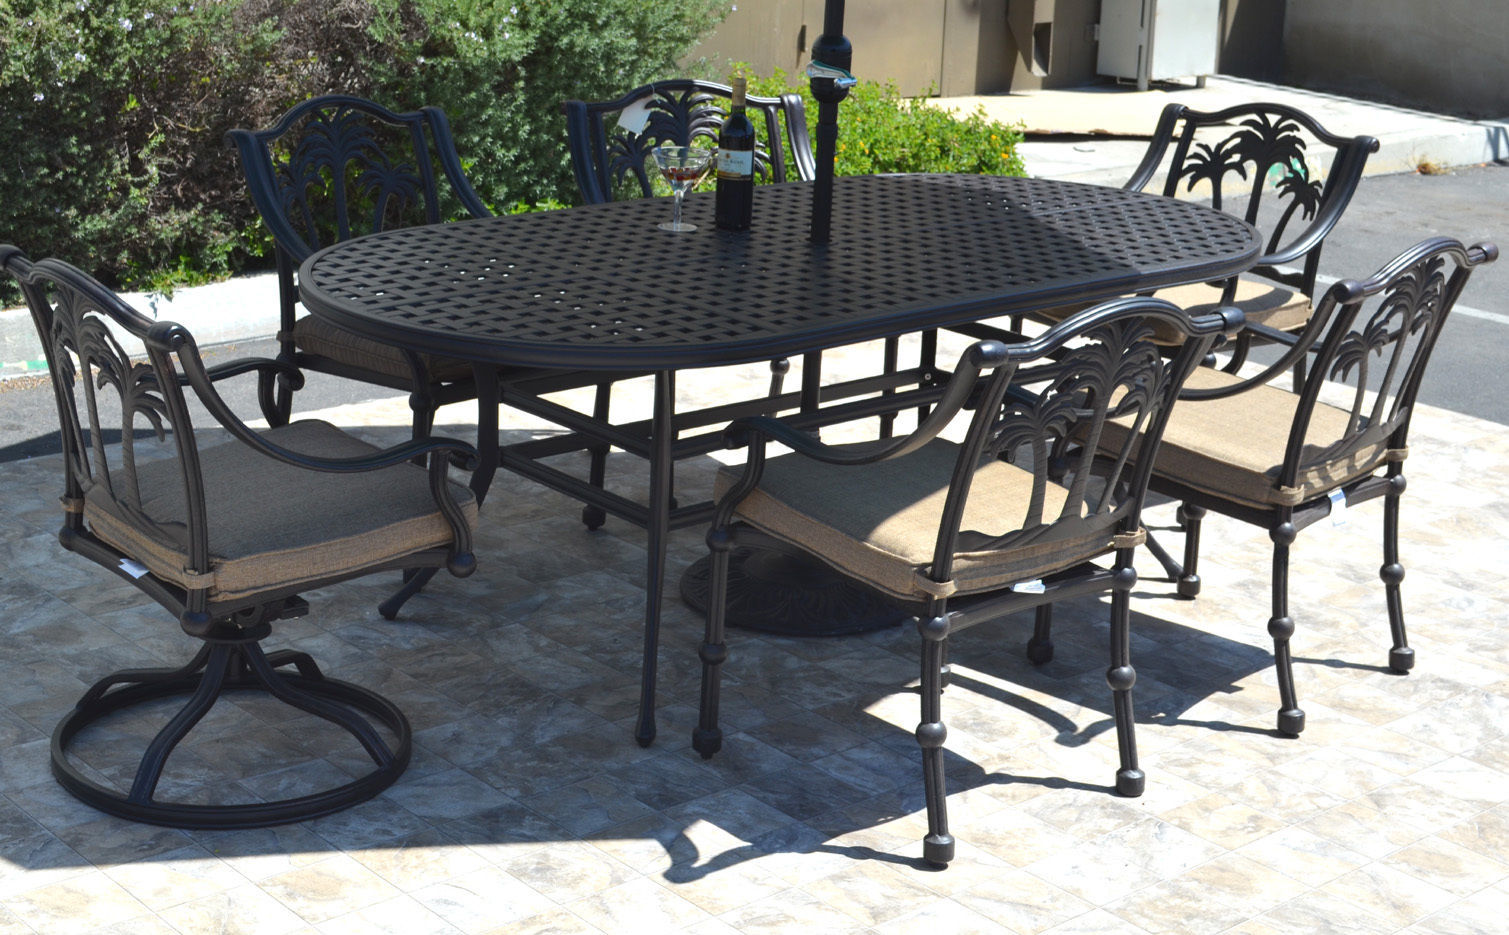 7 piece patio dining set cast aluminum 6 person Tree chairs swivels Nassau table